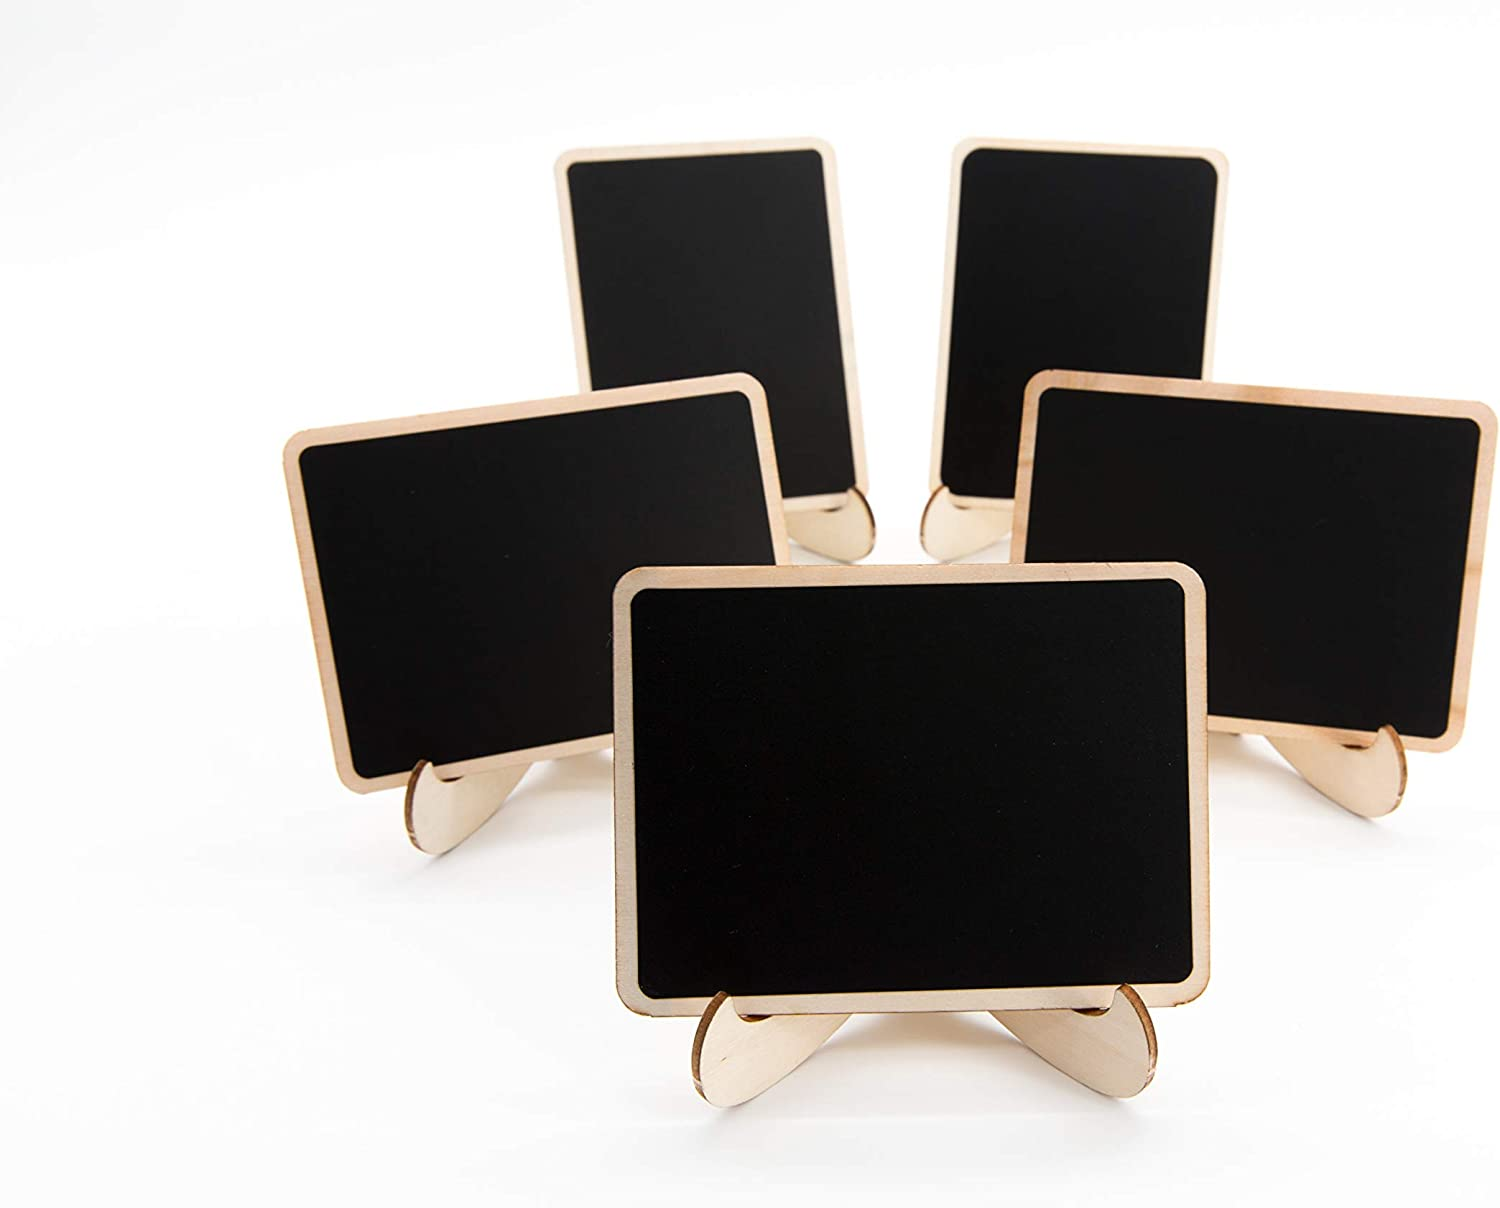 10 Pack Mini Chalkboards Signs with Easel Stand, Small Rectangle Chalkboards Blackboard